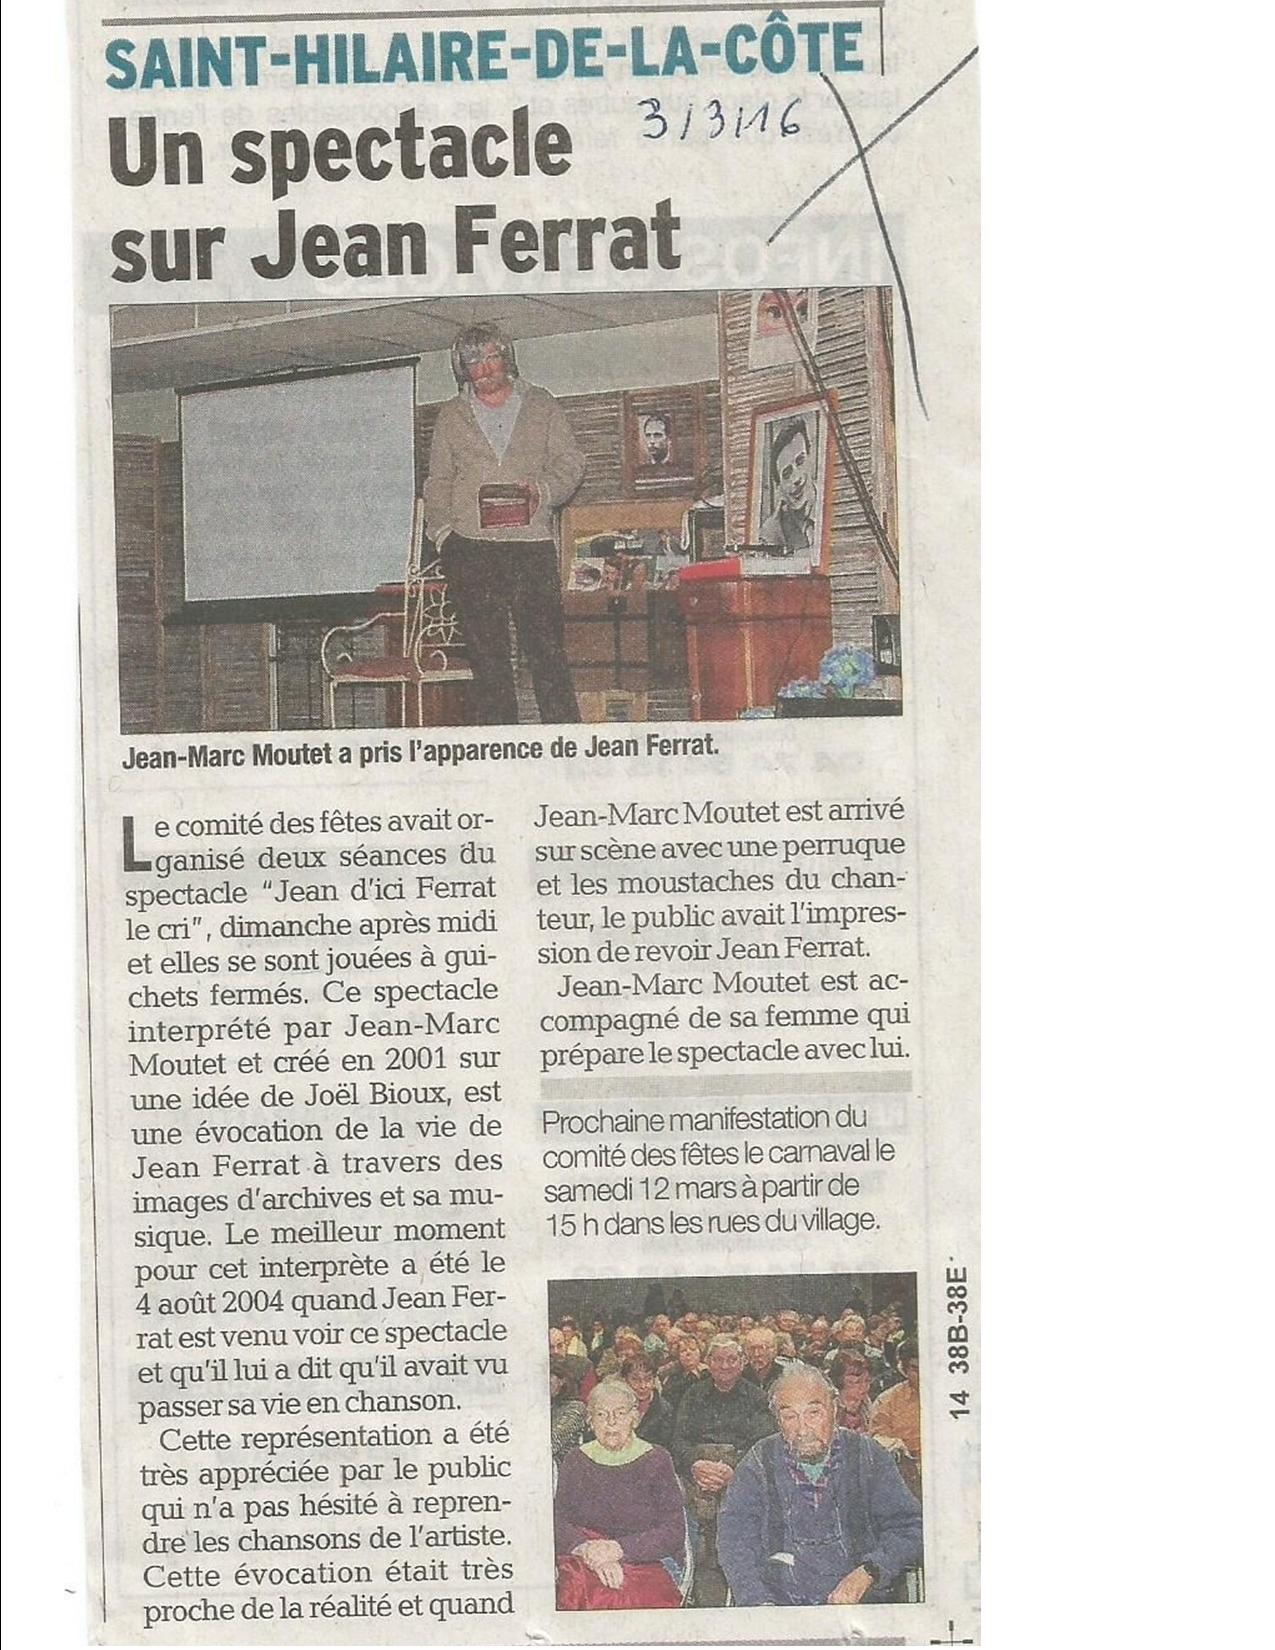 Article dl st hilaire de la cote